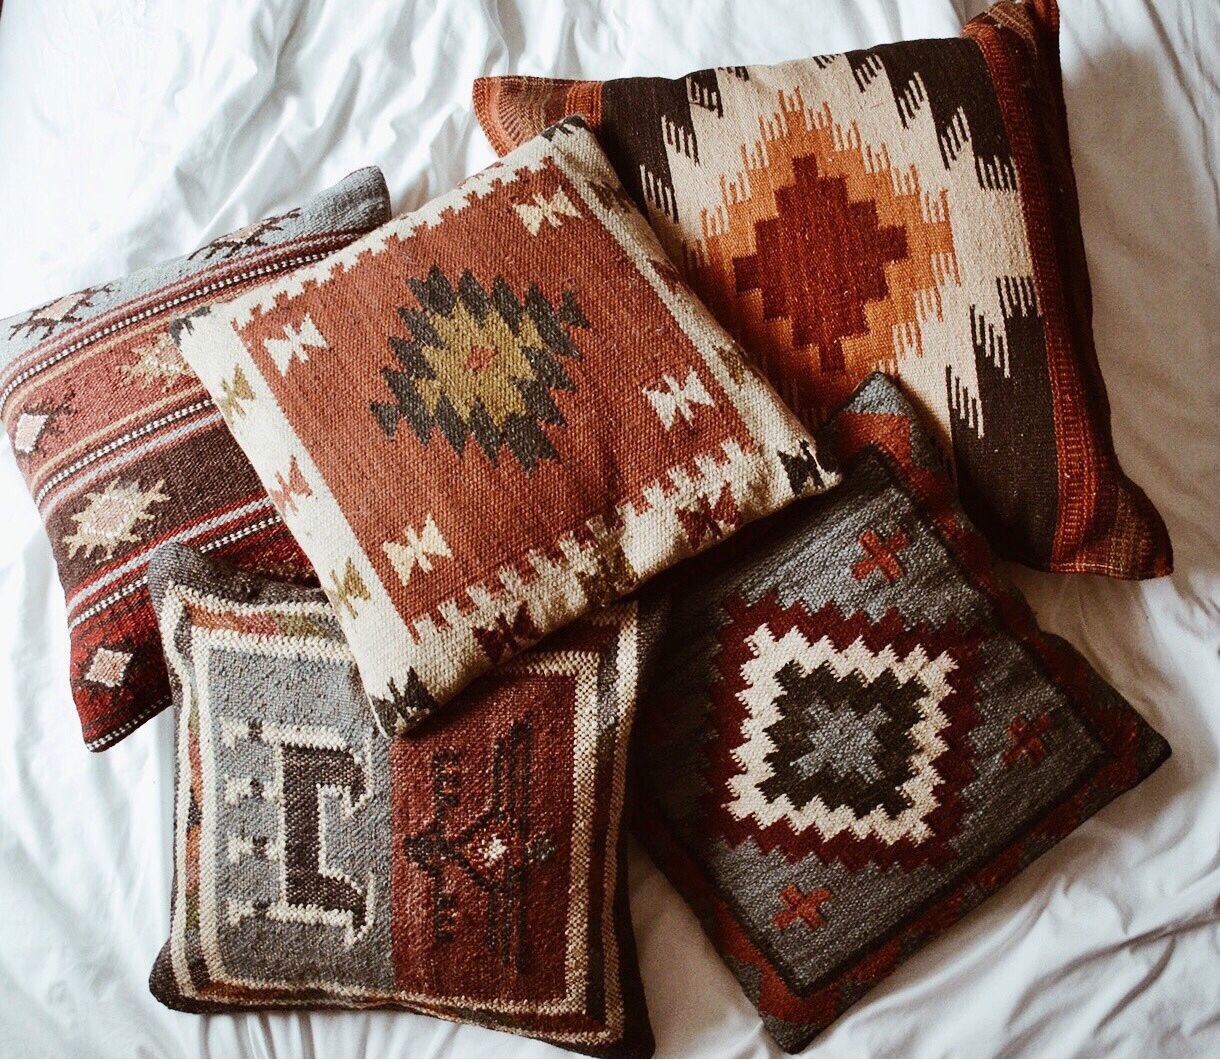 tribal textile hipster until and deny kaleidoscopic design designs mas trned pillows shipping through vasare monday x aztec pillow tumblr gift decor creative pin free